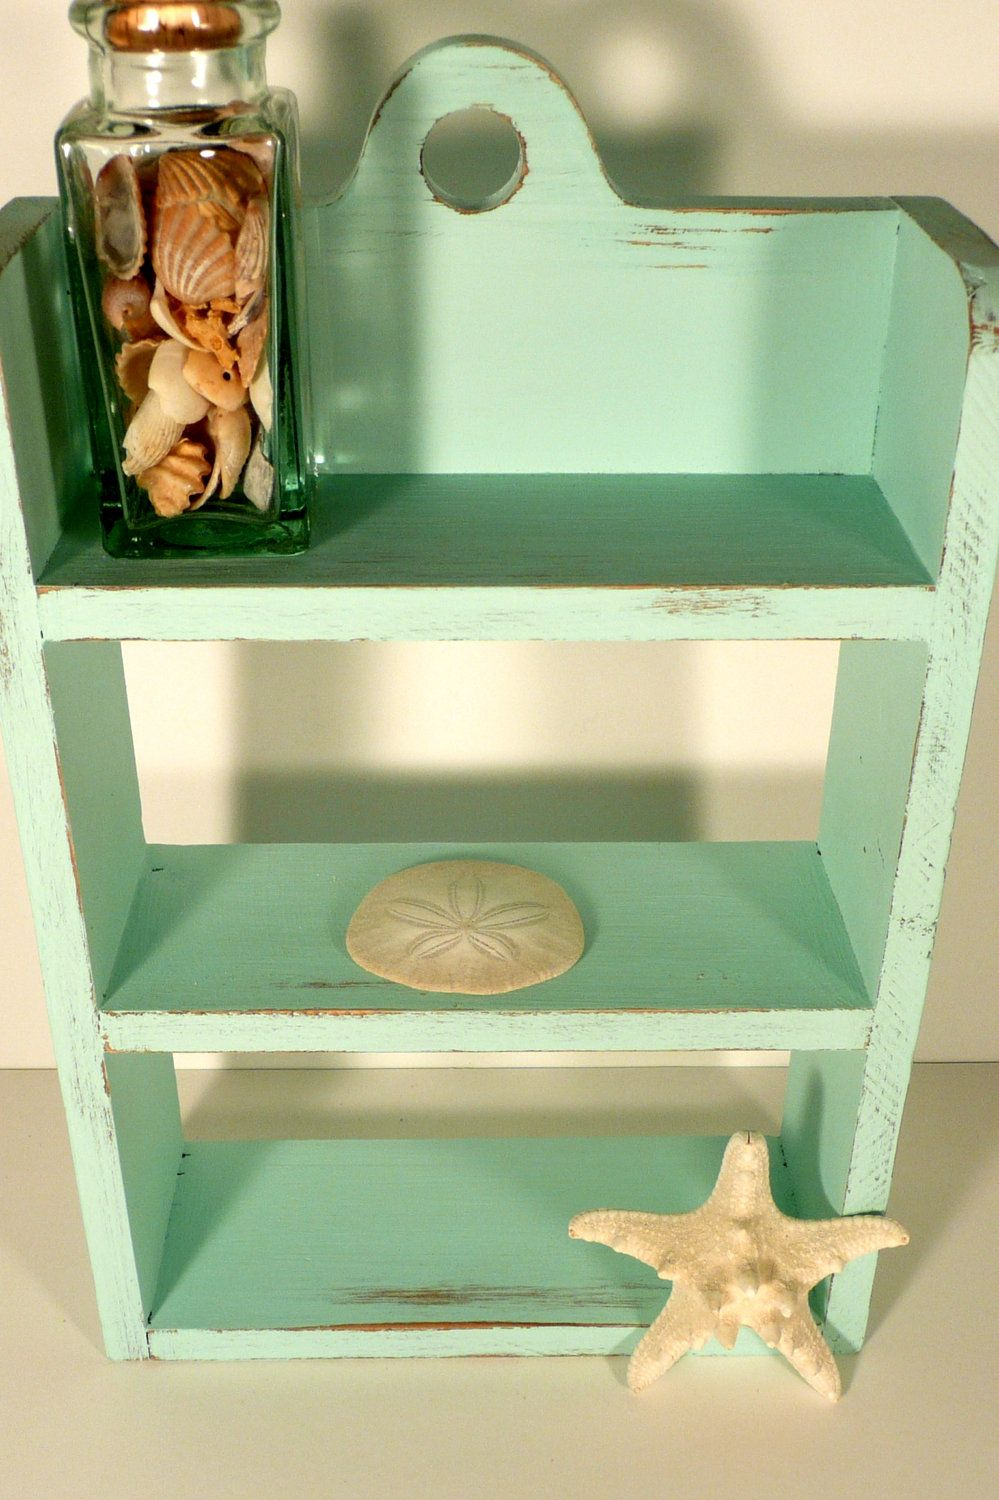 Shabby Chic Beach Aqua Knick Knack Shelf Rustic And Distressed 20 00 Via Etsy